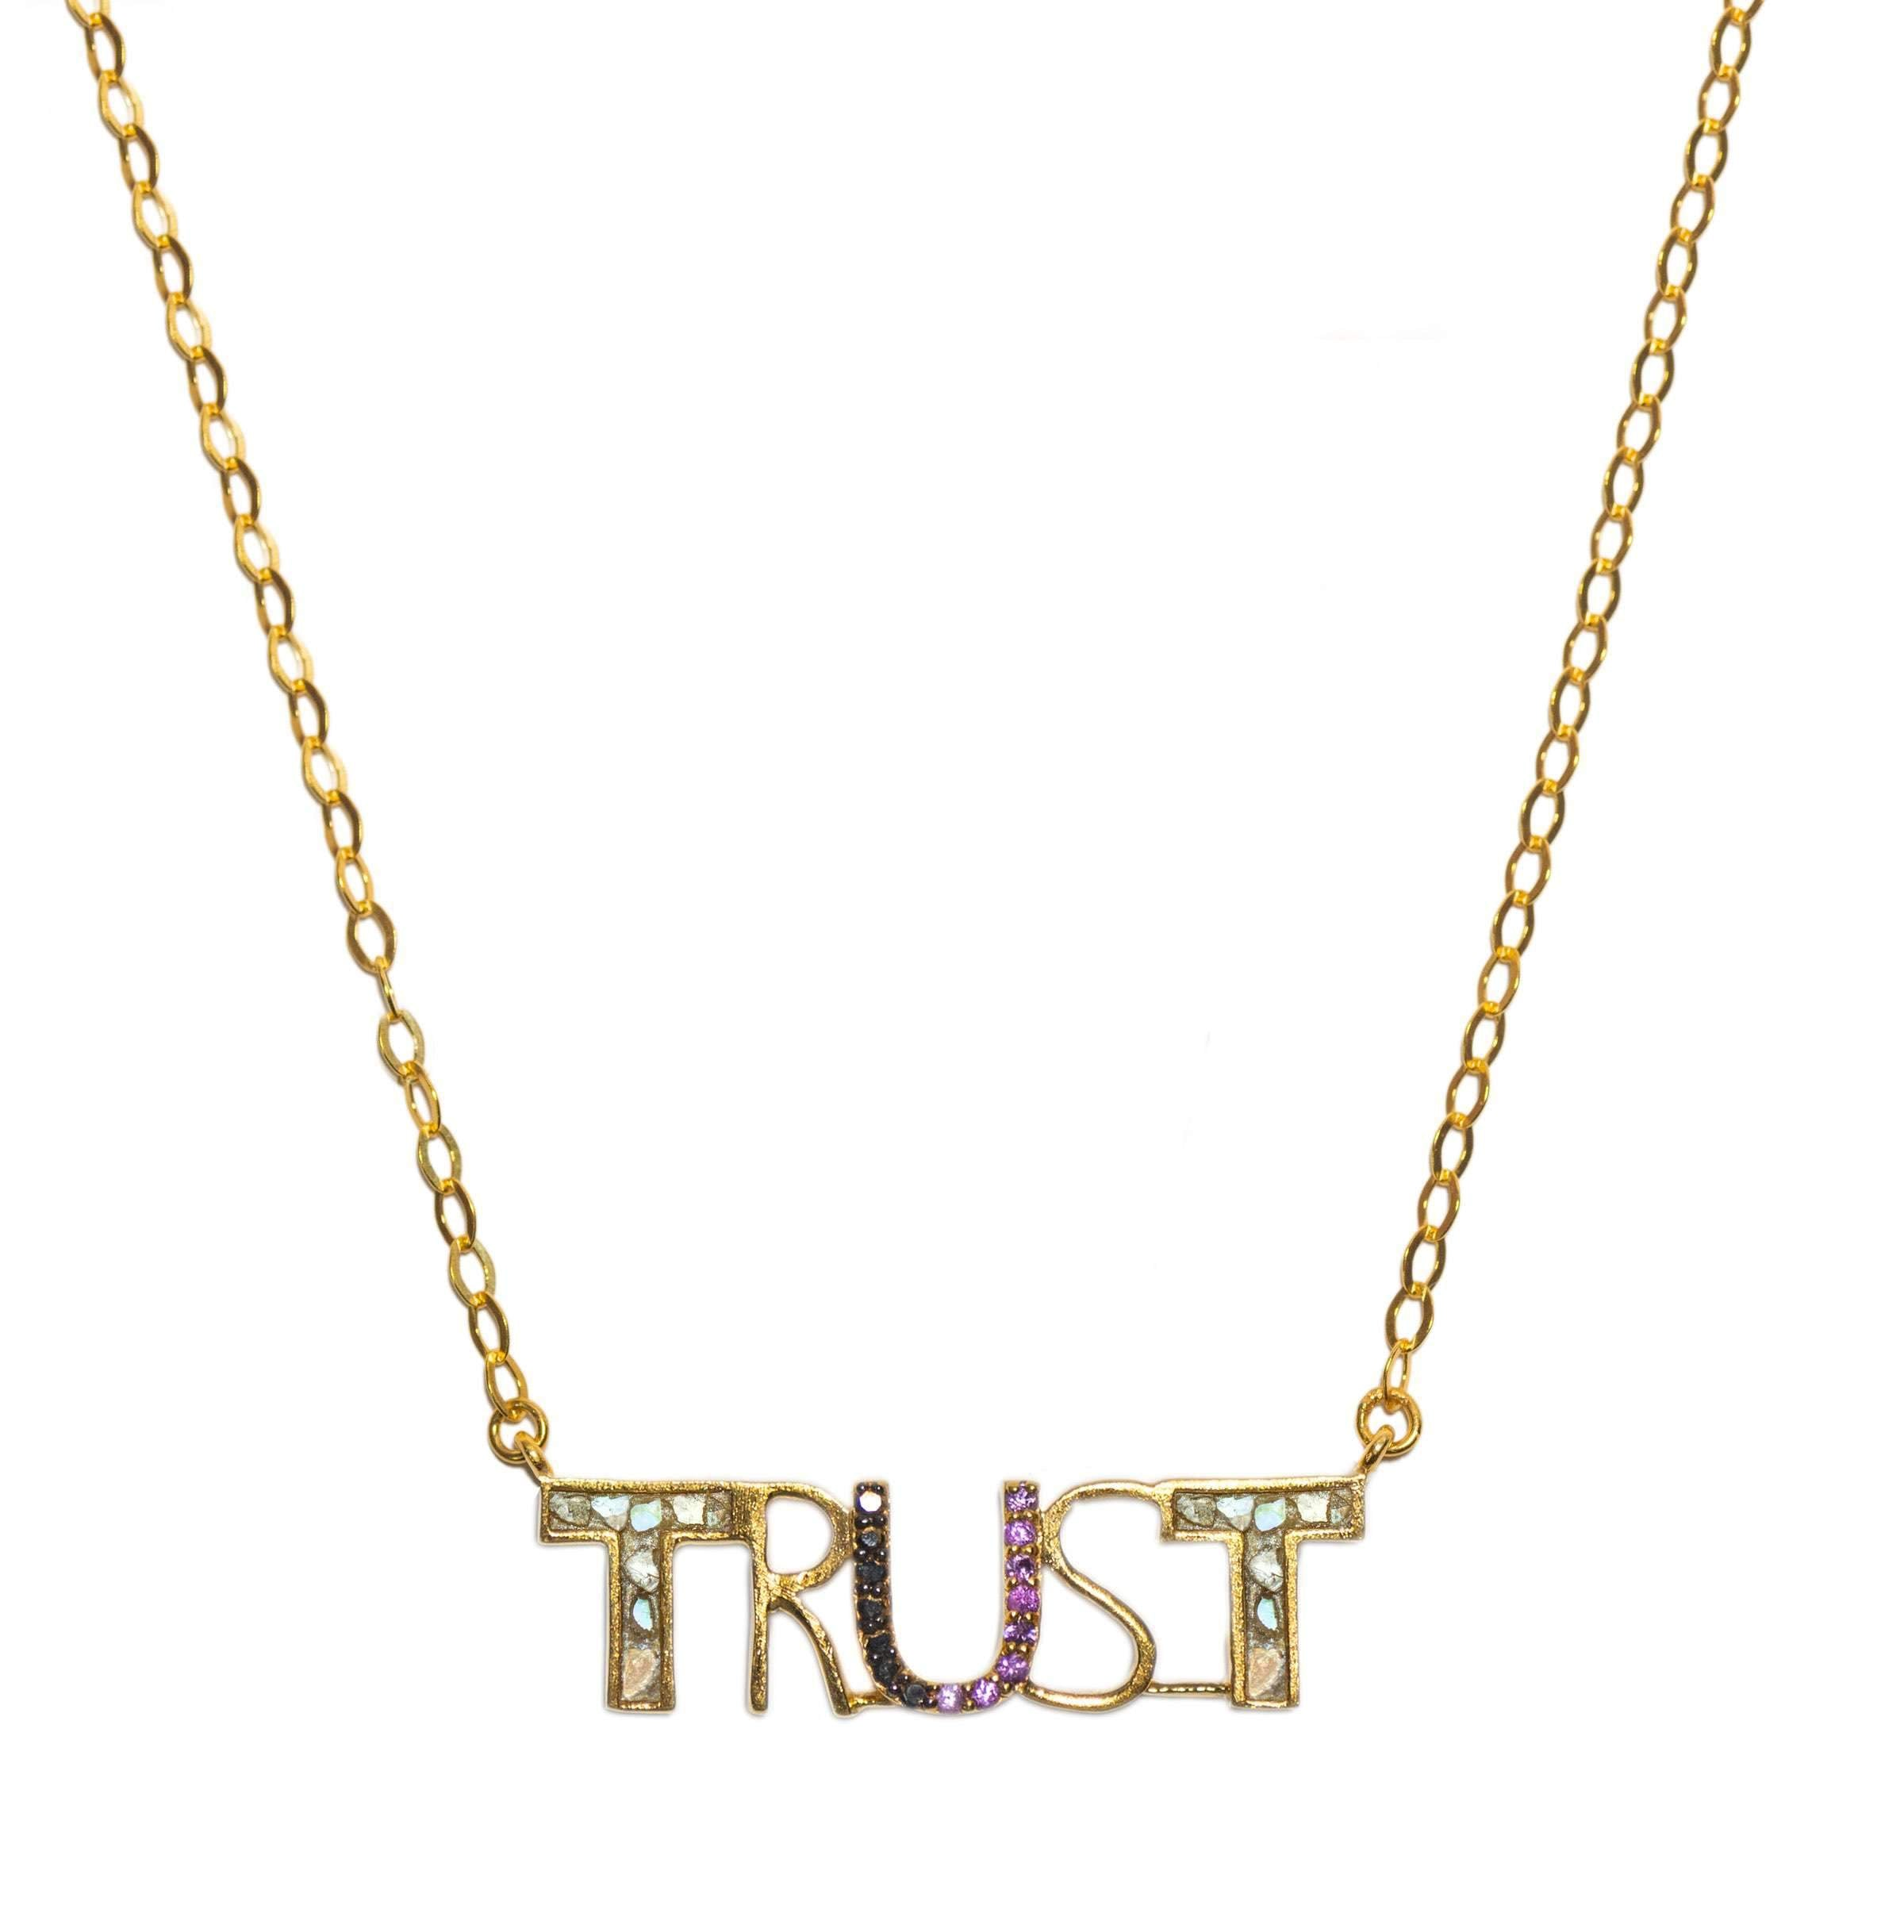 trust word pendant necklace